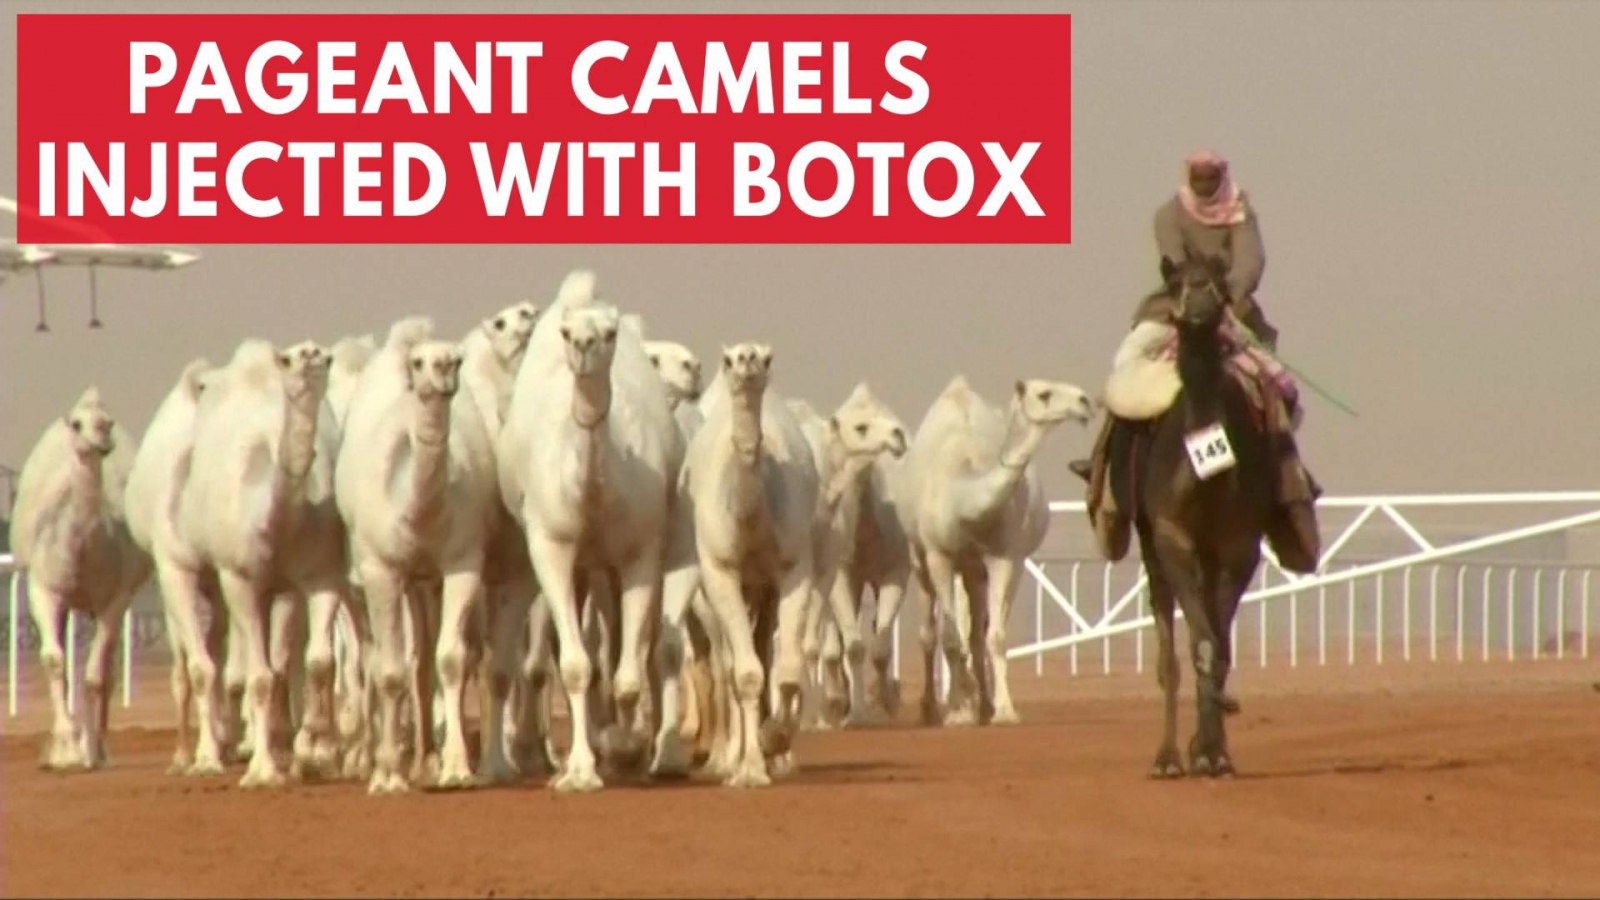 12-camels-disqualified-from-beauty-contest-for-receiving-botox-injections